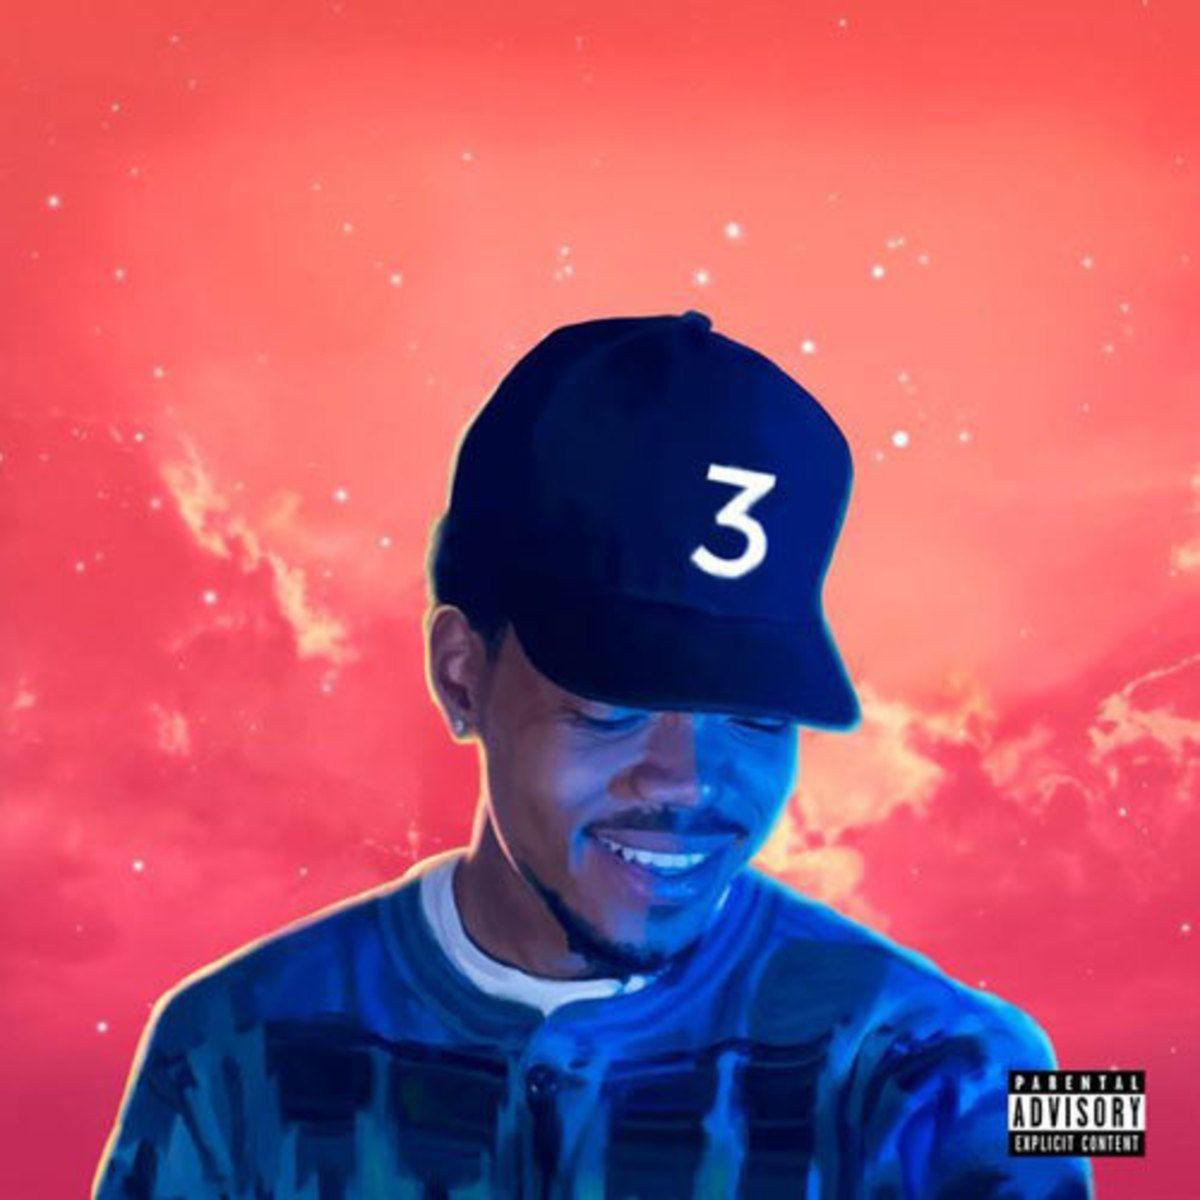 Chance The Rapper Coloring Book Download Awesome Chance The Rapper S Album Cover For His Album Coloring Bo Coloring Book Album Mixtape Cover Cool Album Covers